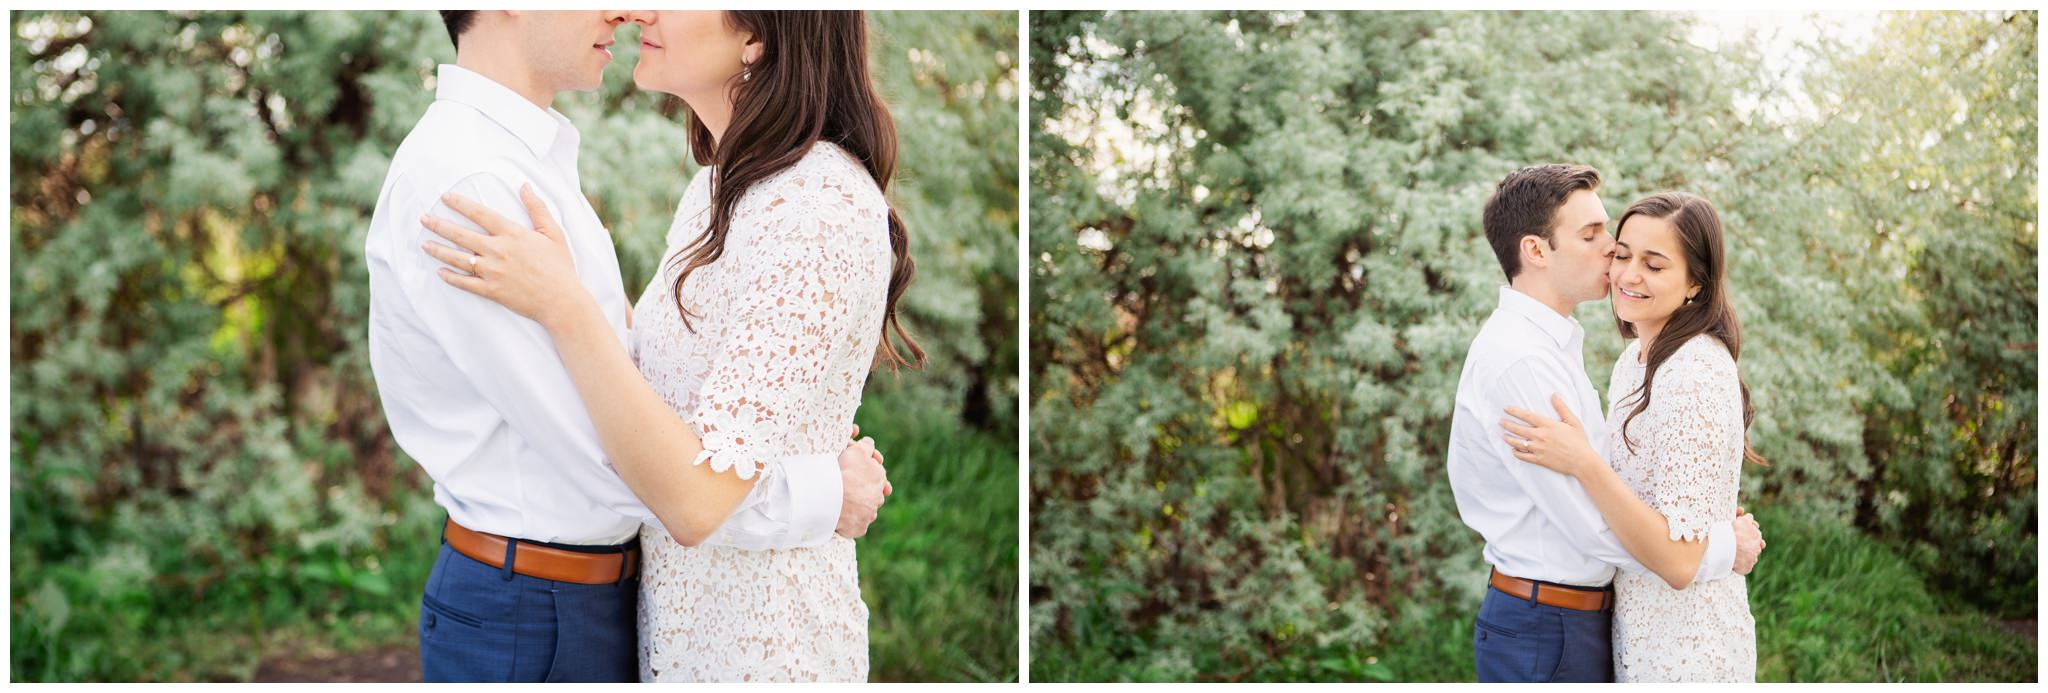 Engagement session at Tunnel Springs